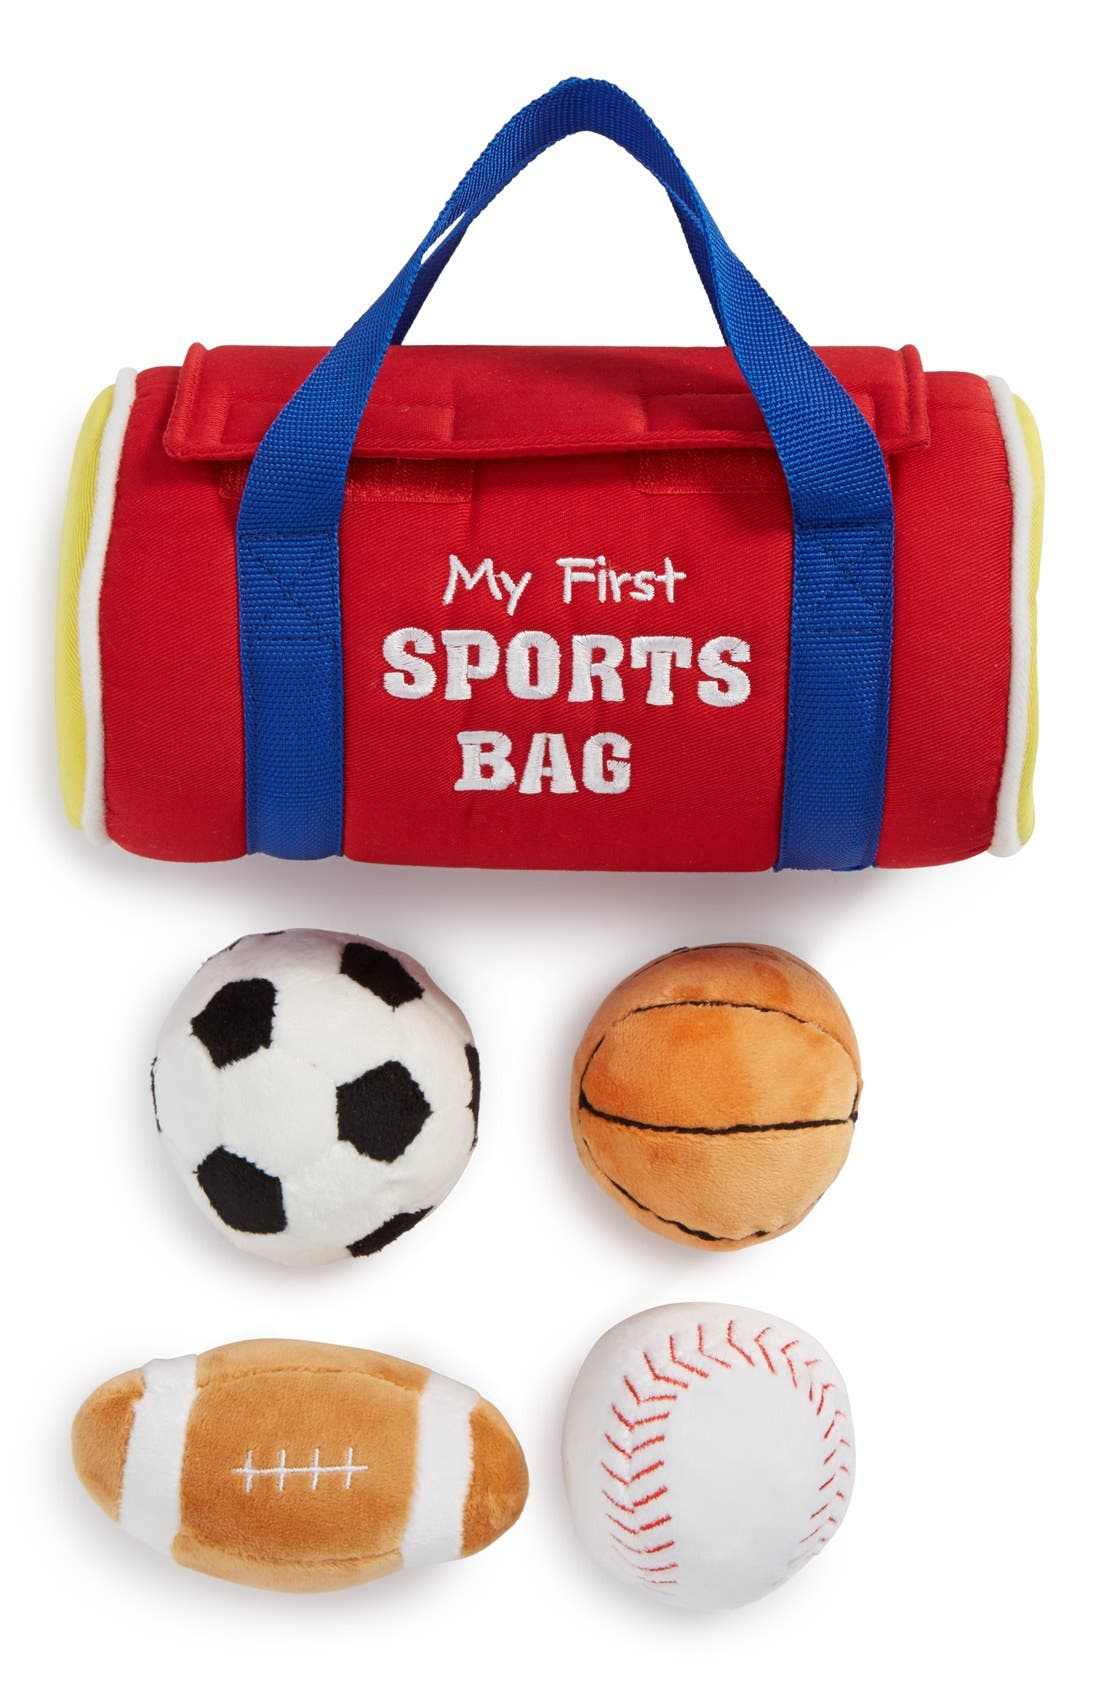 GUND, Baby Gund 'My First Sports Bag' Play Set, Main thumbnail 1, color, RED